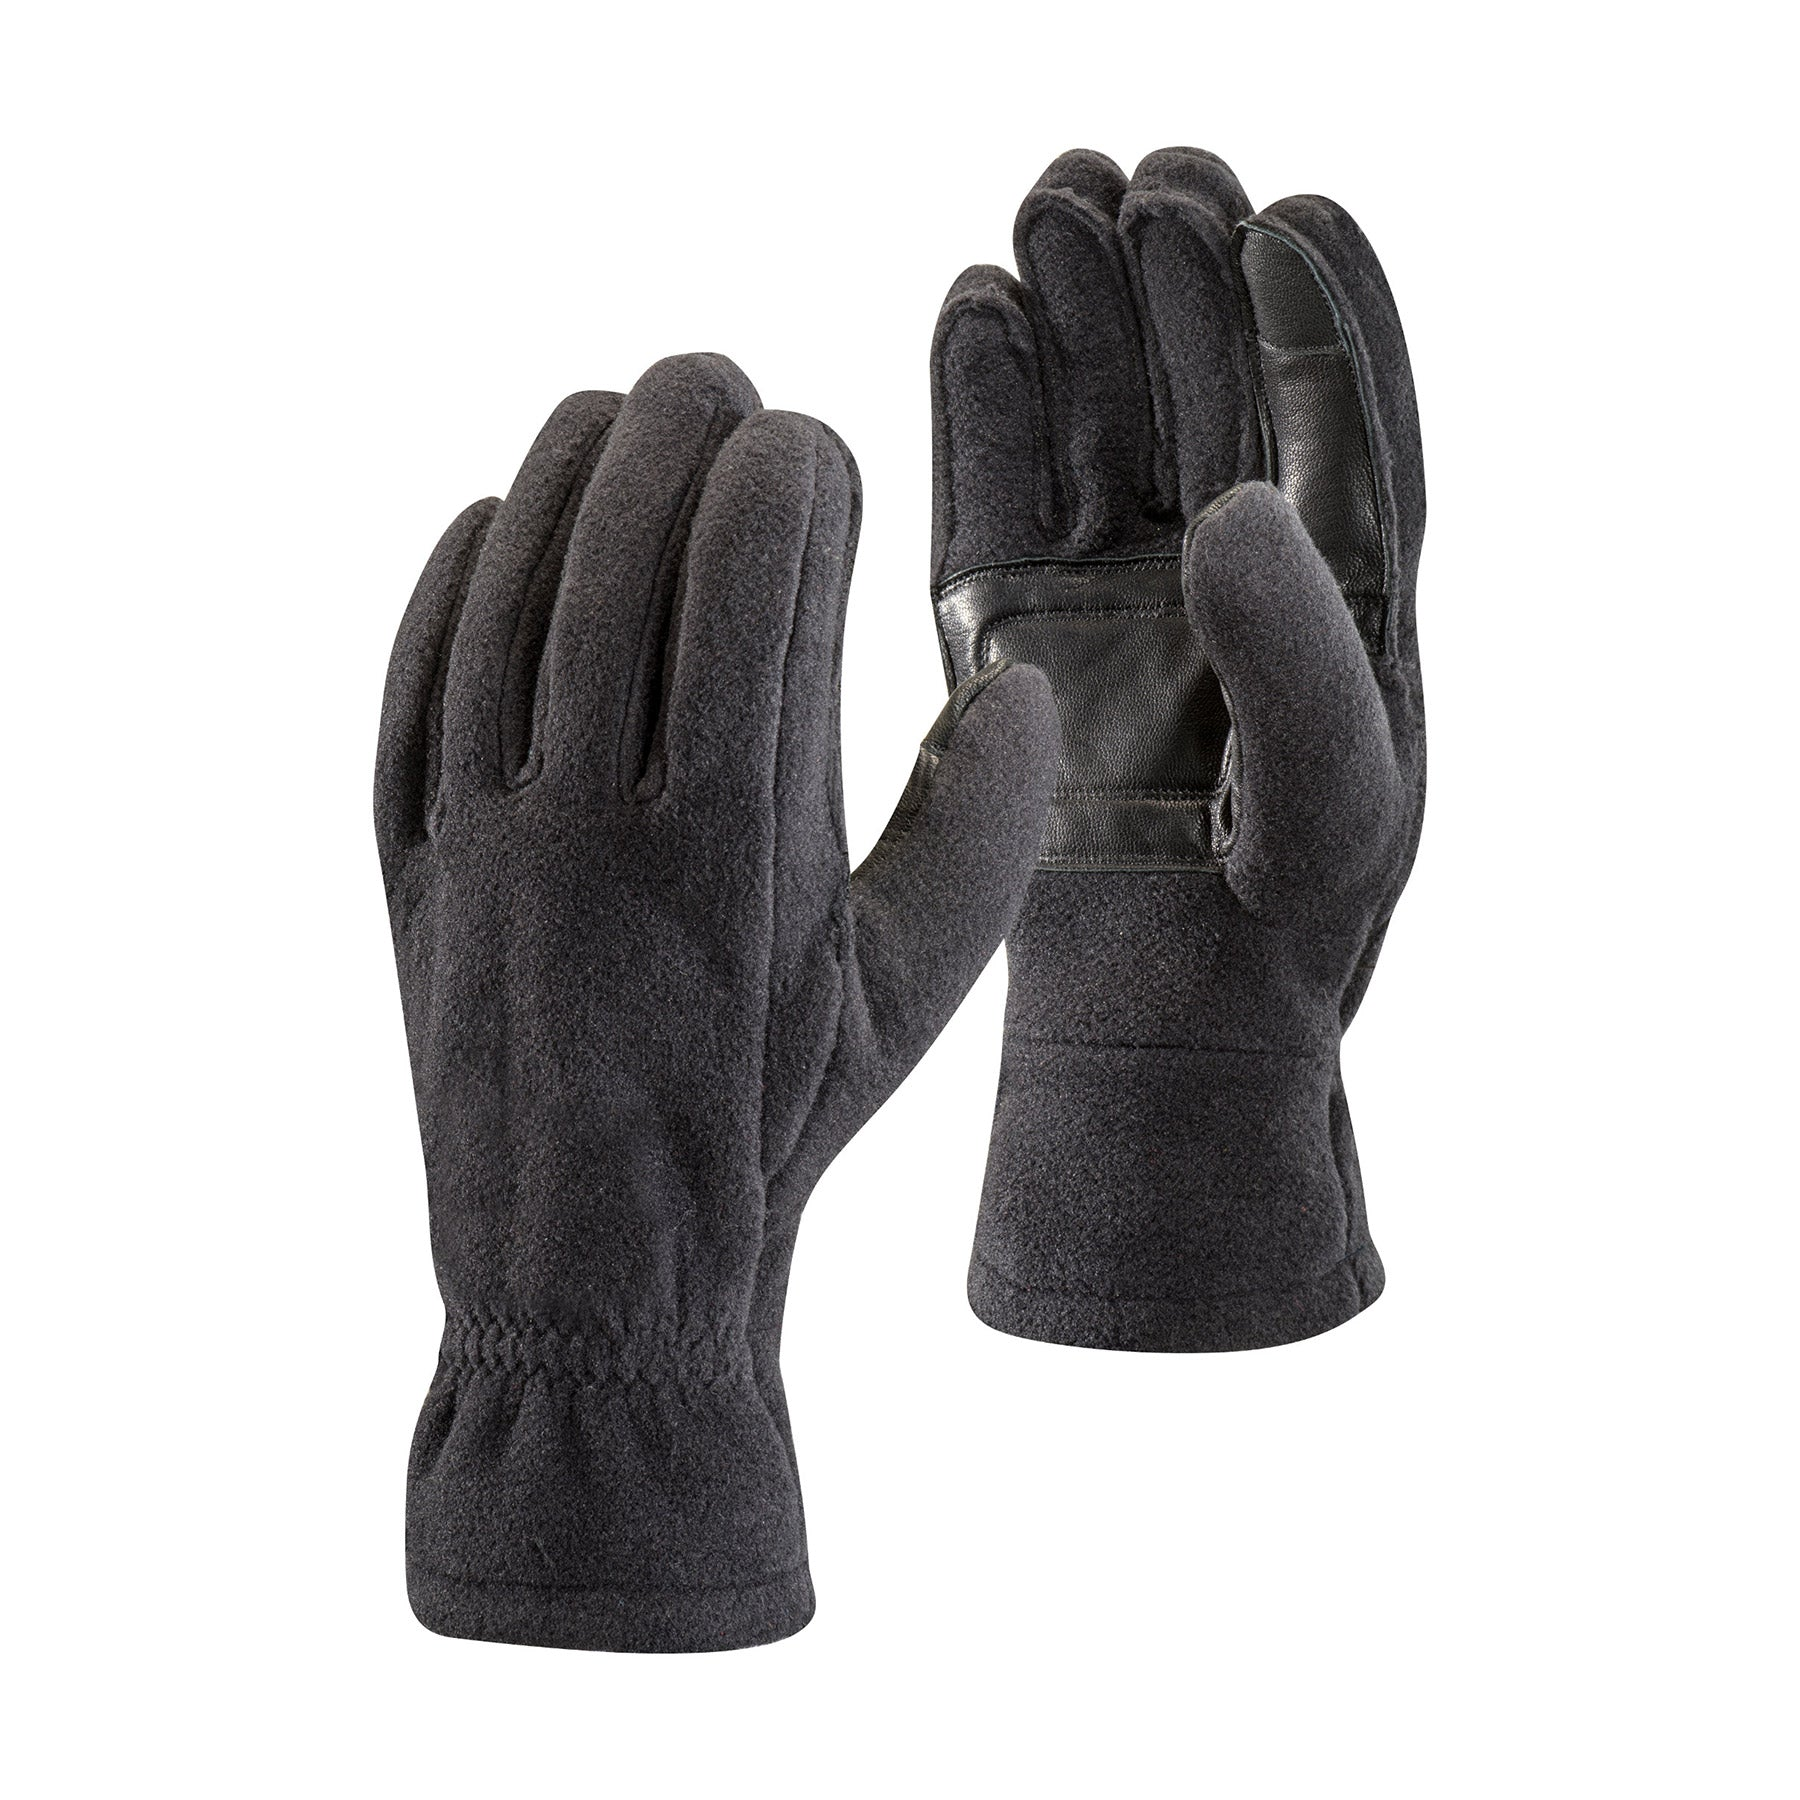 a pair of black fleece gloves